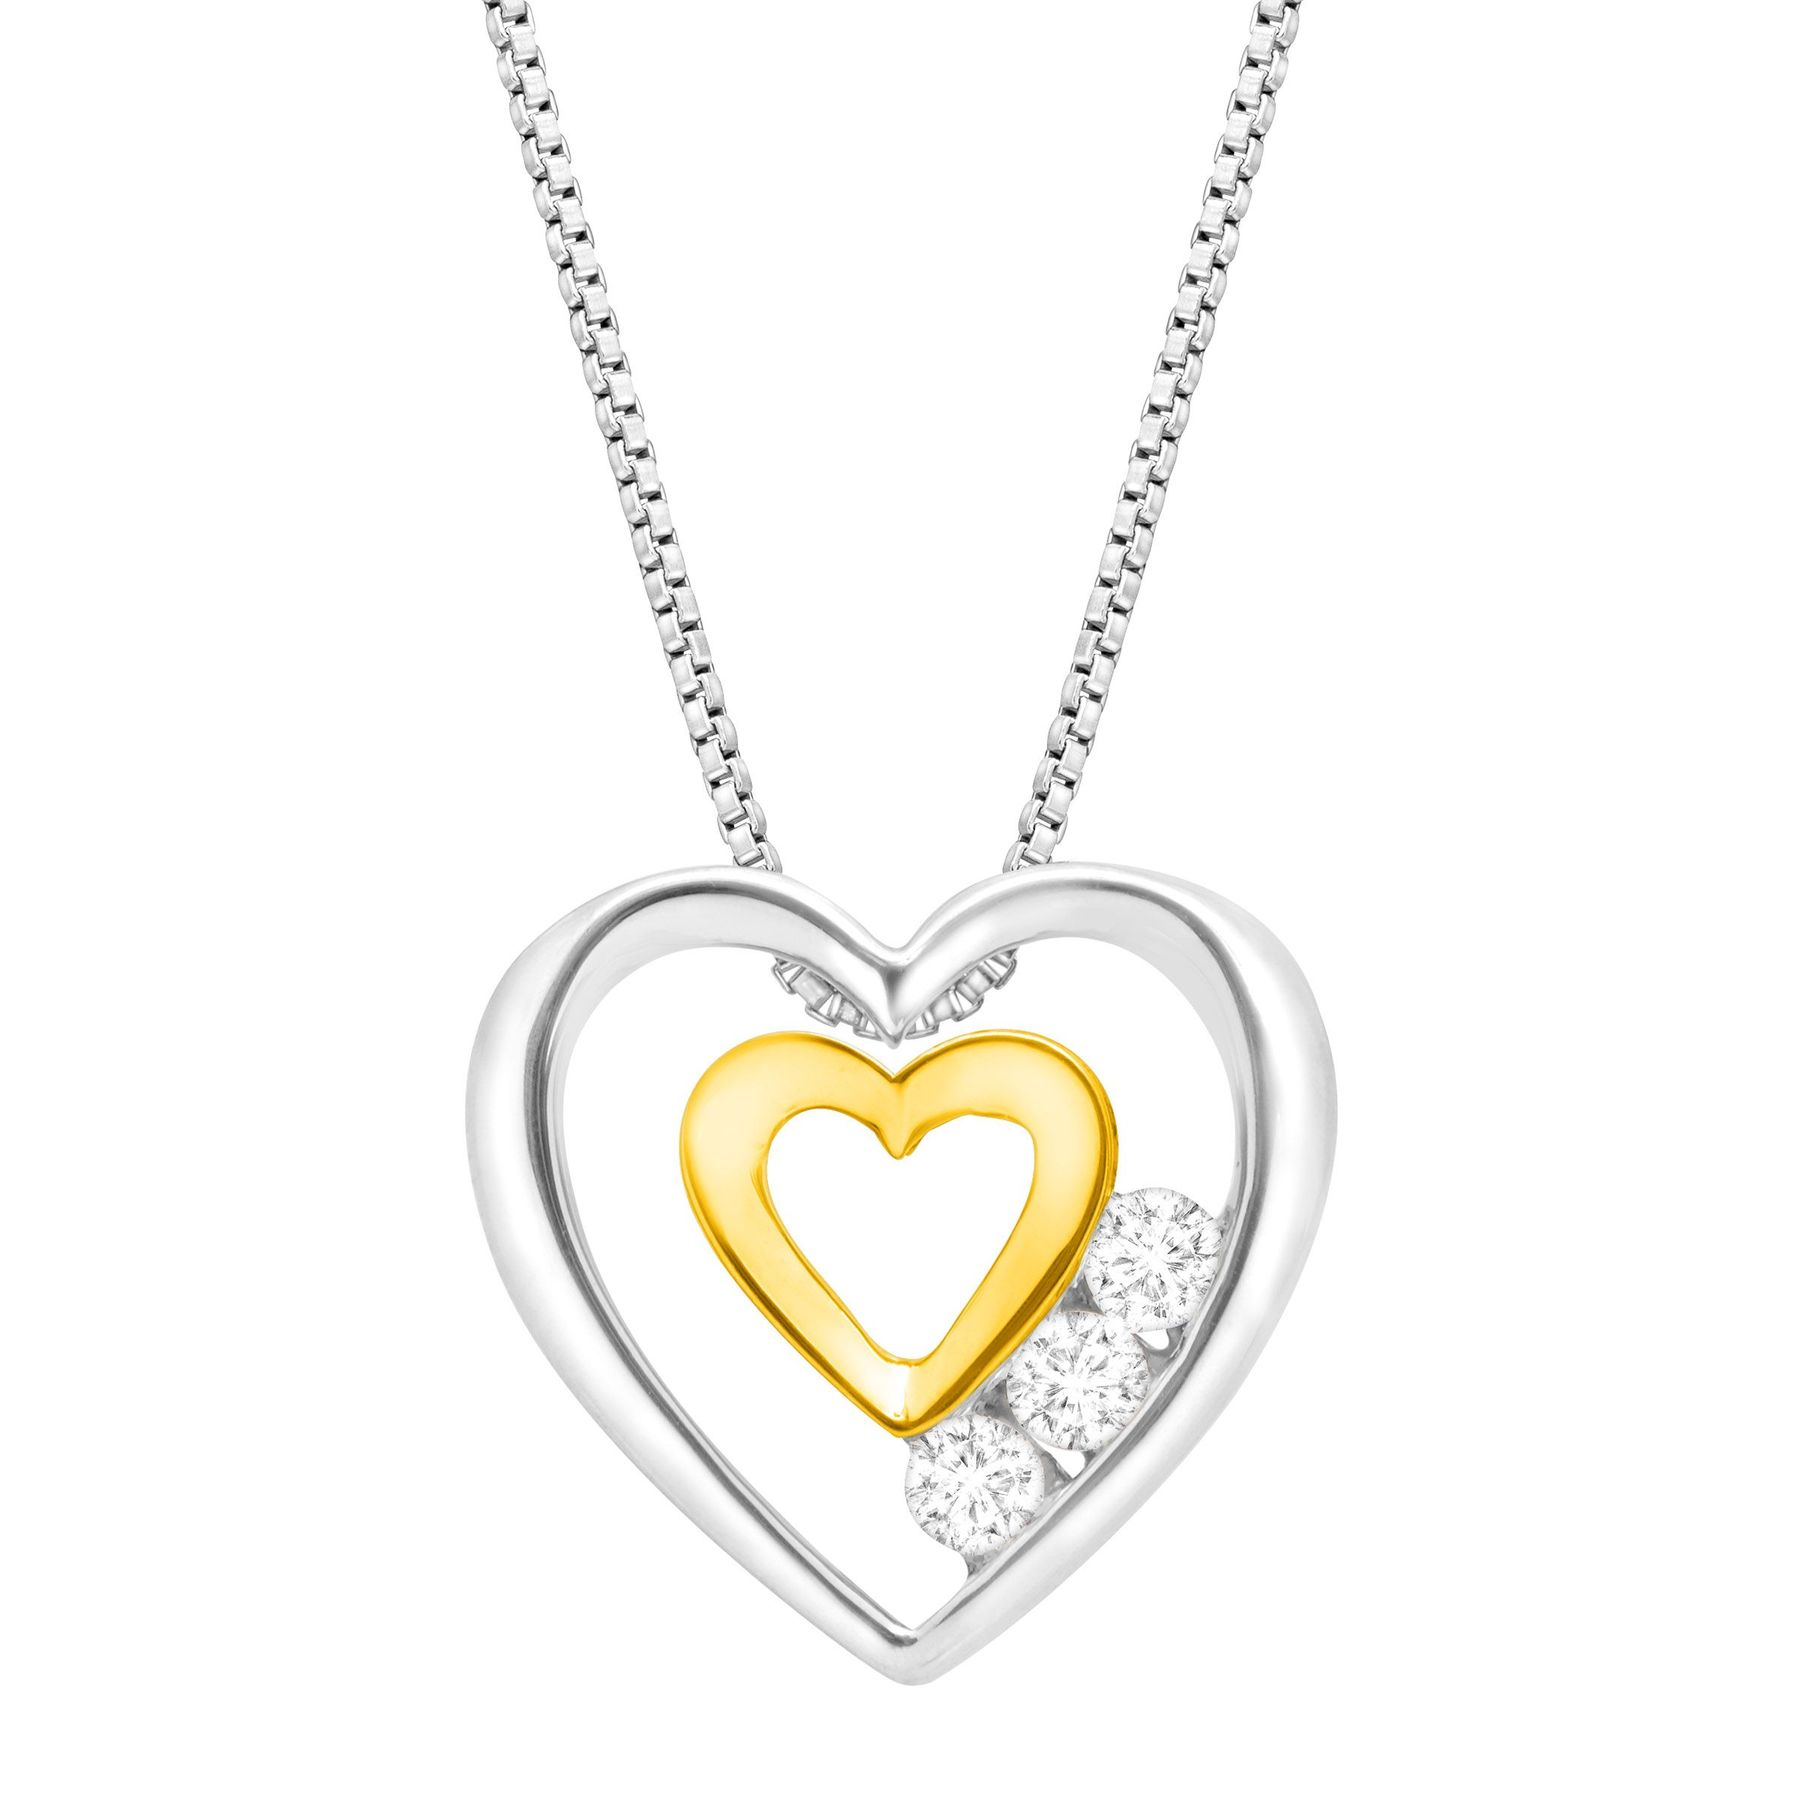 double pendant lisaangeljewellery personalised by original lisa angel product heart necklace charm